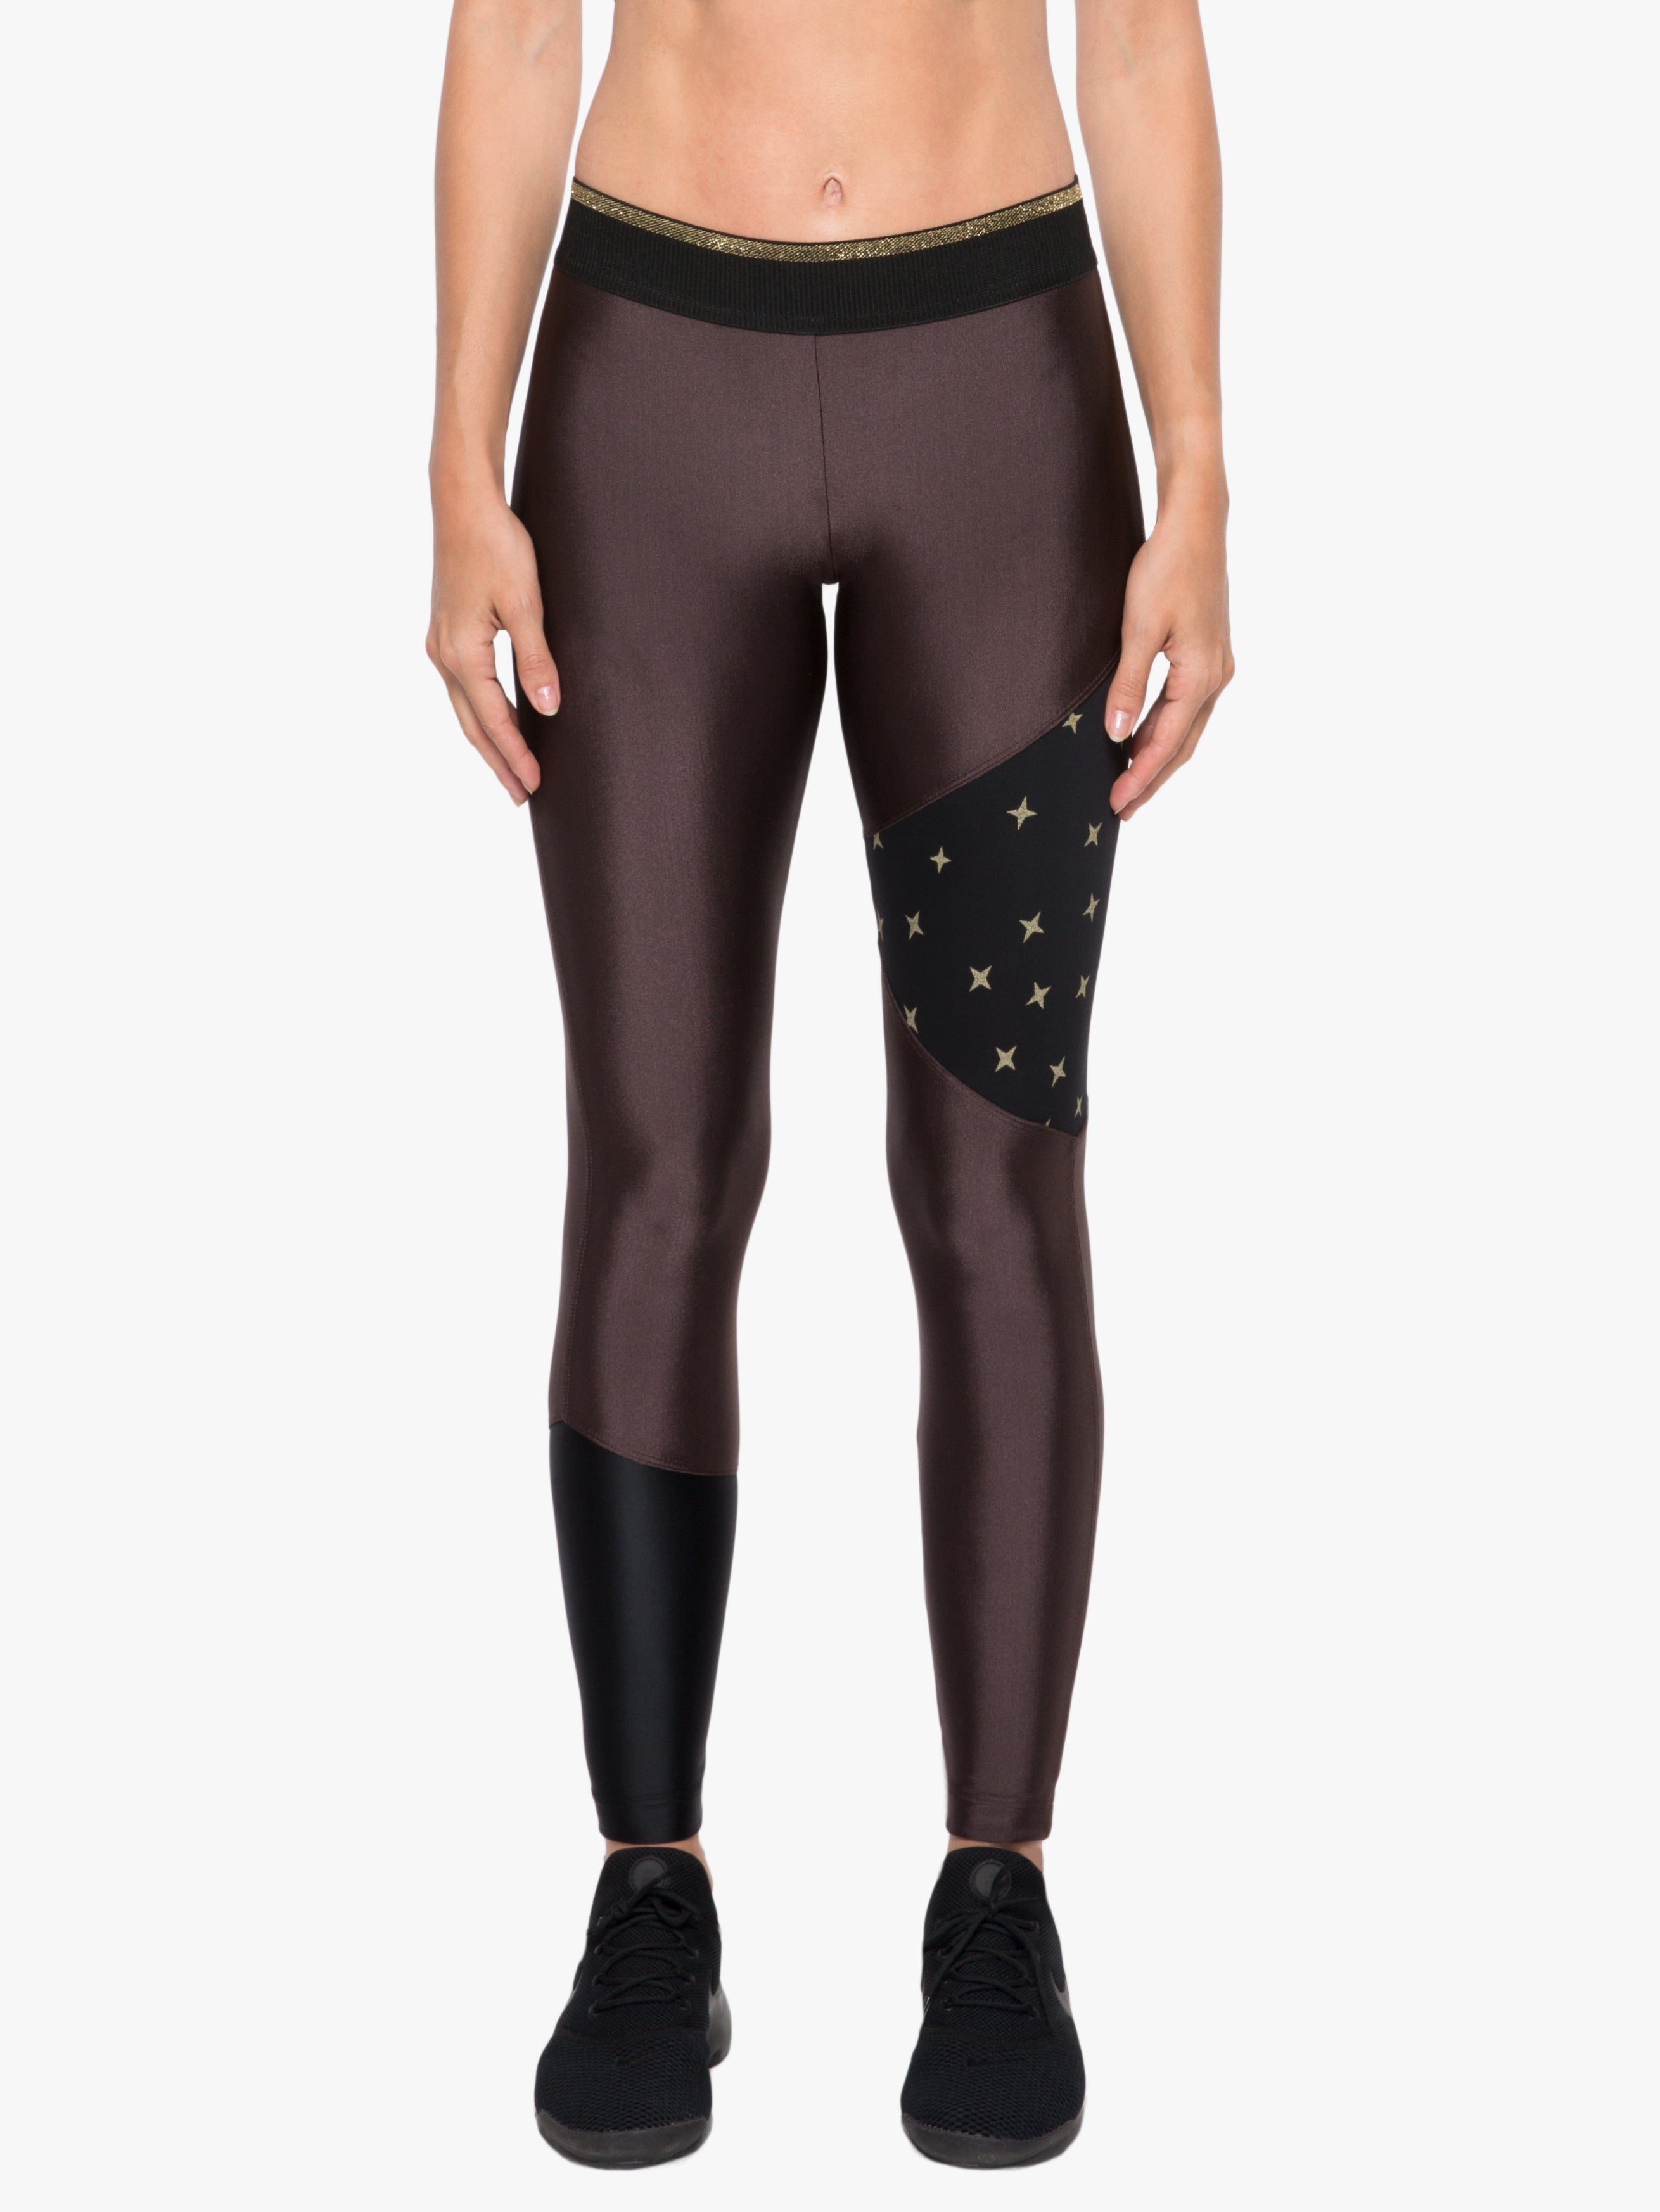 Amber Mid-Rise Sprint Legging - Ametrine/Constellation Black